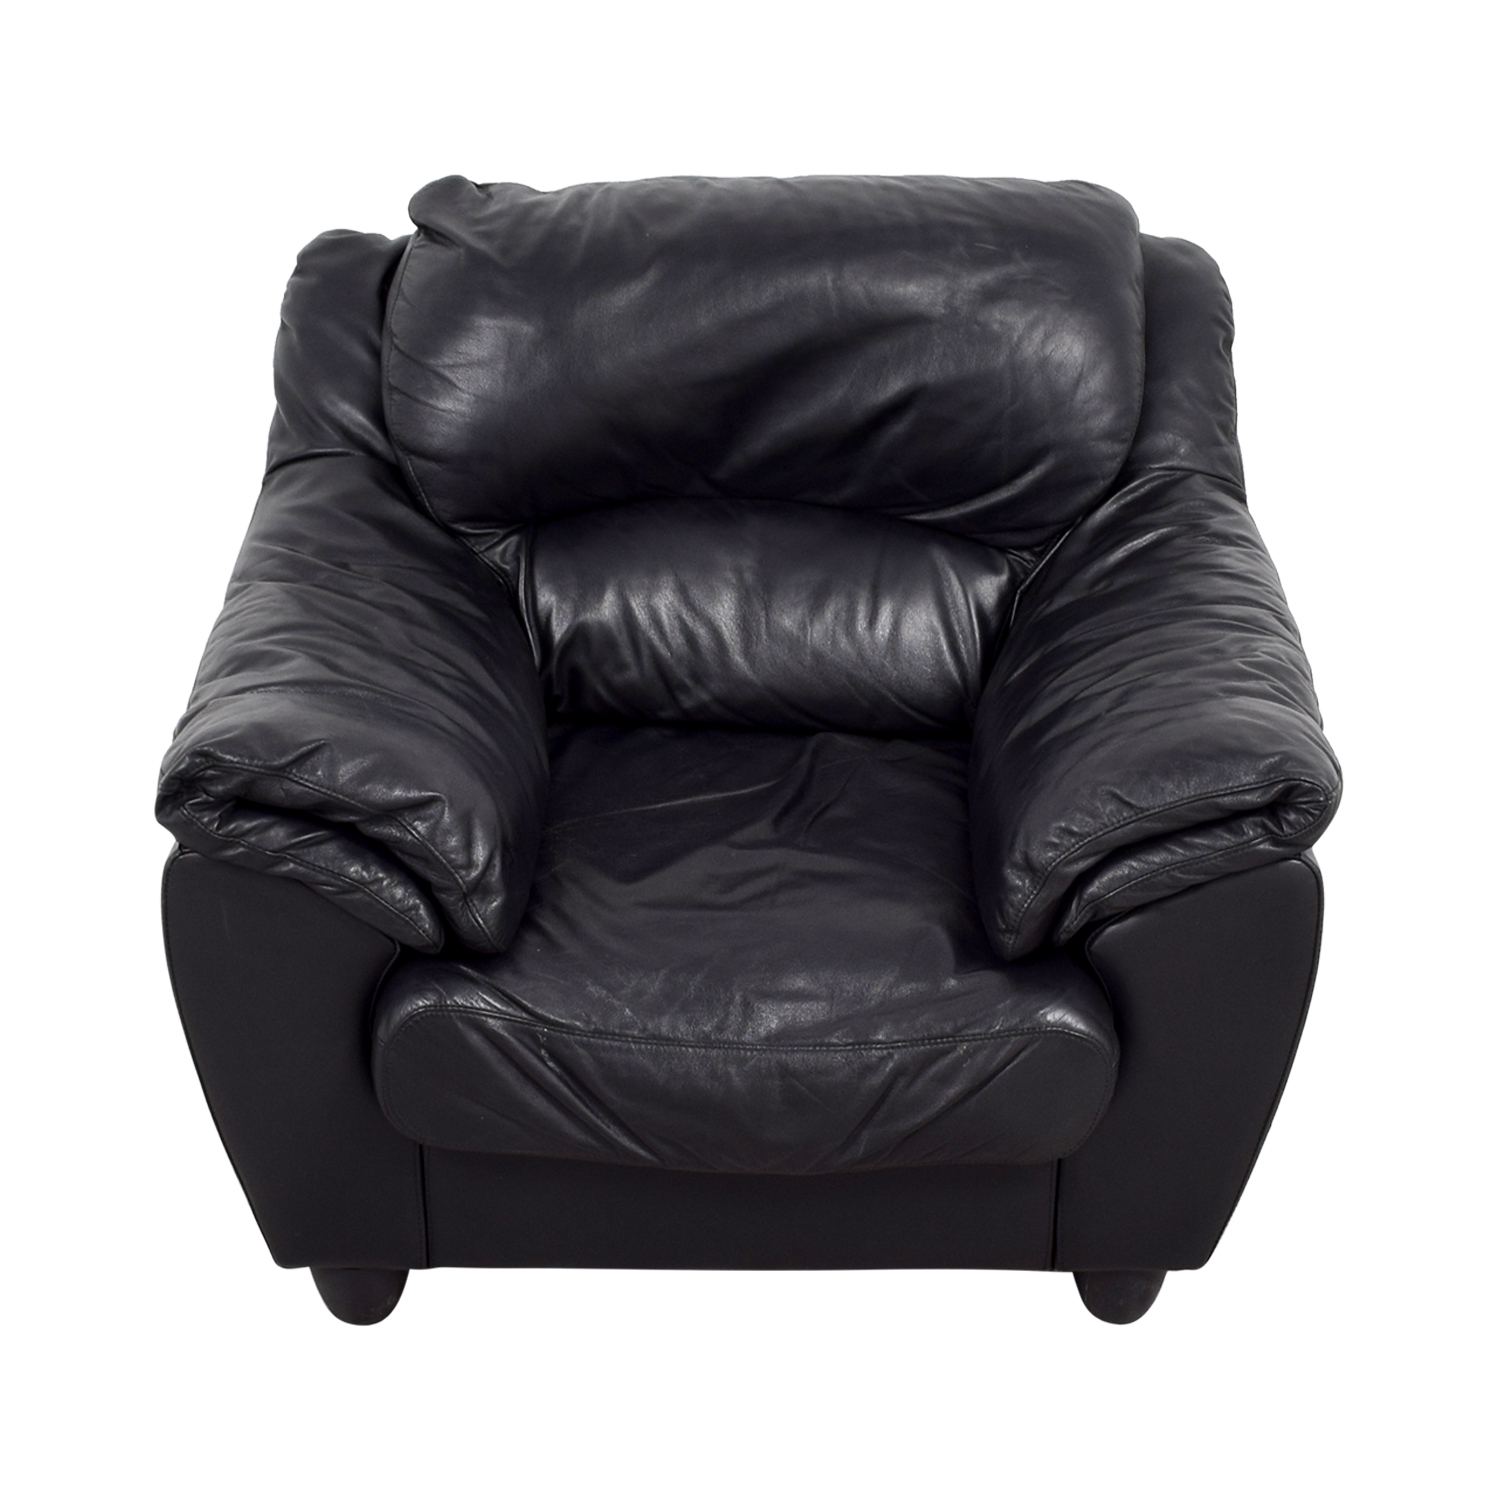 shop Raymour & Flanigan Raymour & Flanigan Black Leather Chair online